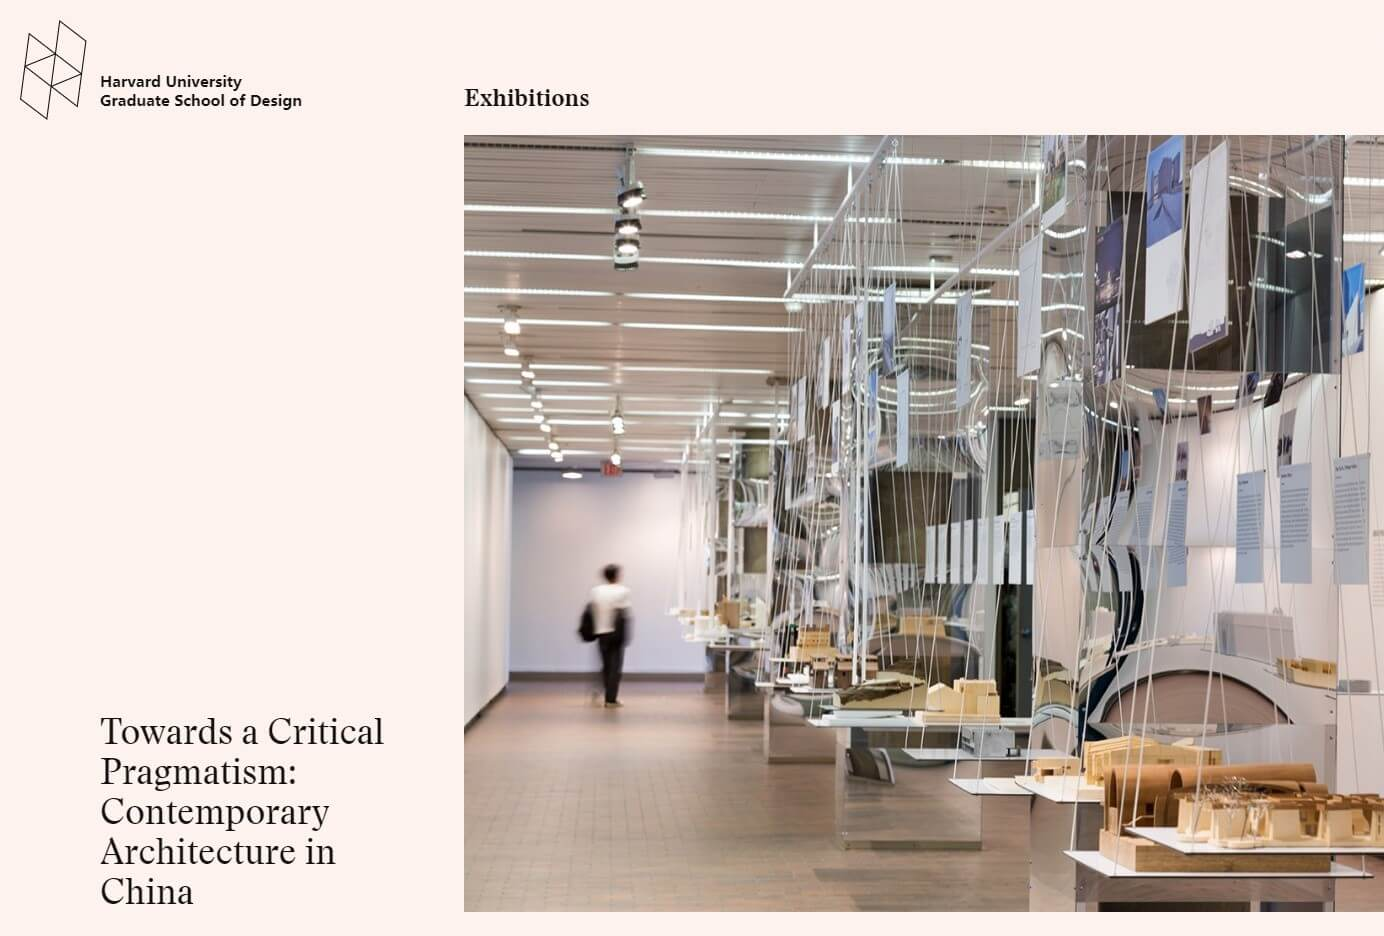 Harvard GSD-Toward a Critical Pragmatism: Contemporary Architecture in China